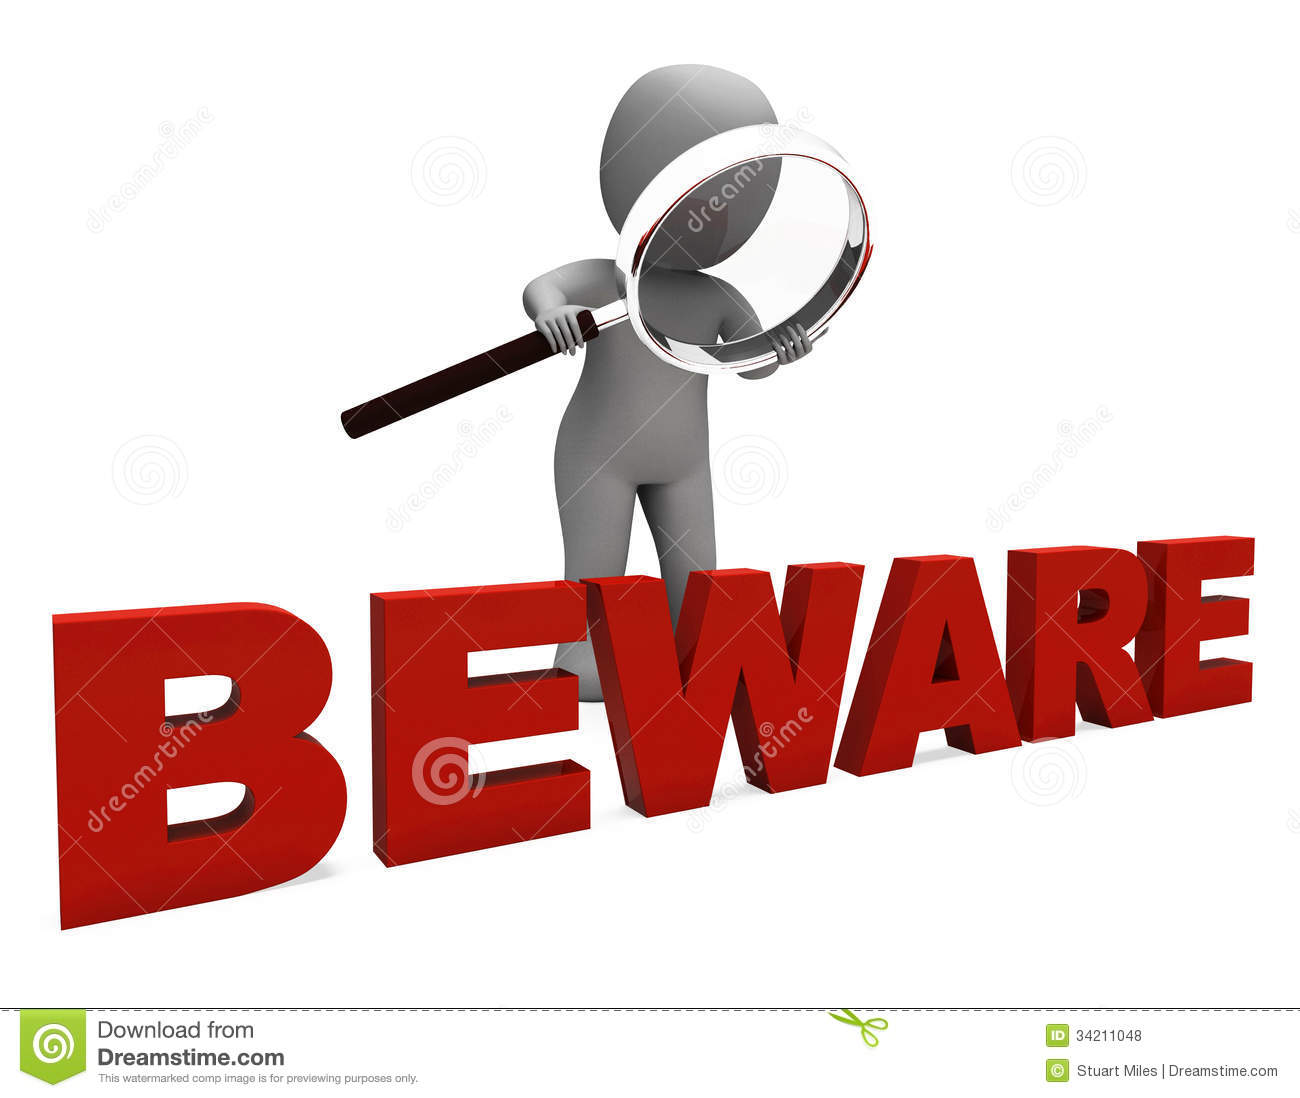 Be aware clipart transparent library Beware Clipart Group with 51+ items transparent library